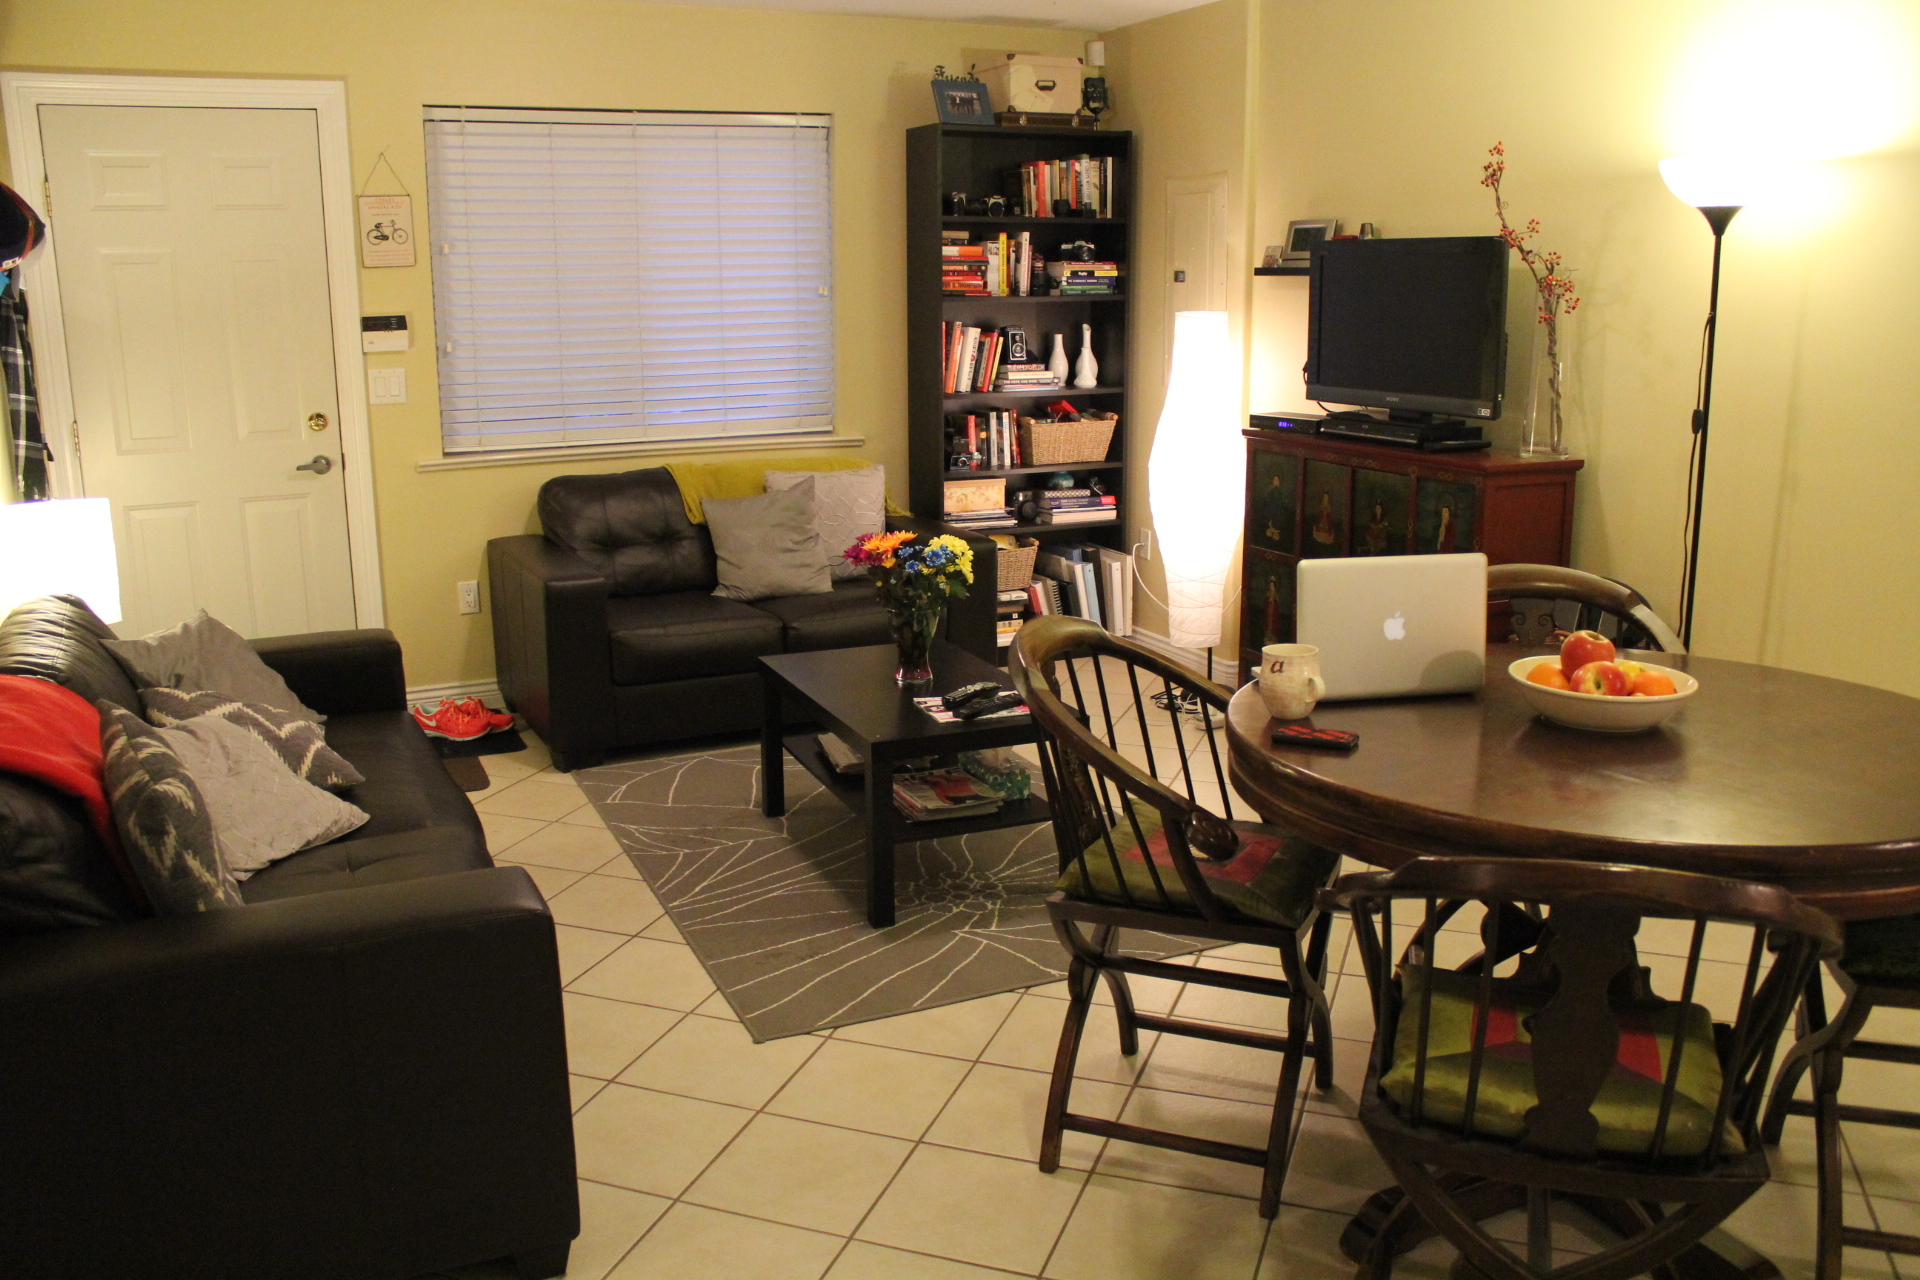 The pros and cons of living in a basement apartment ashly monkey - Small space for lease style ...